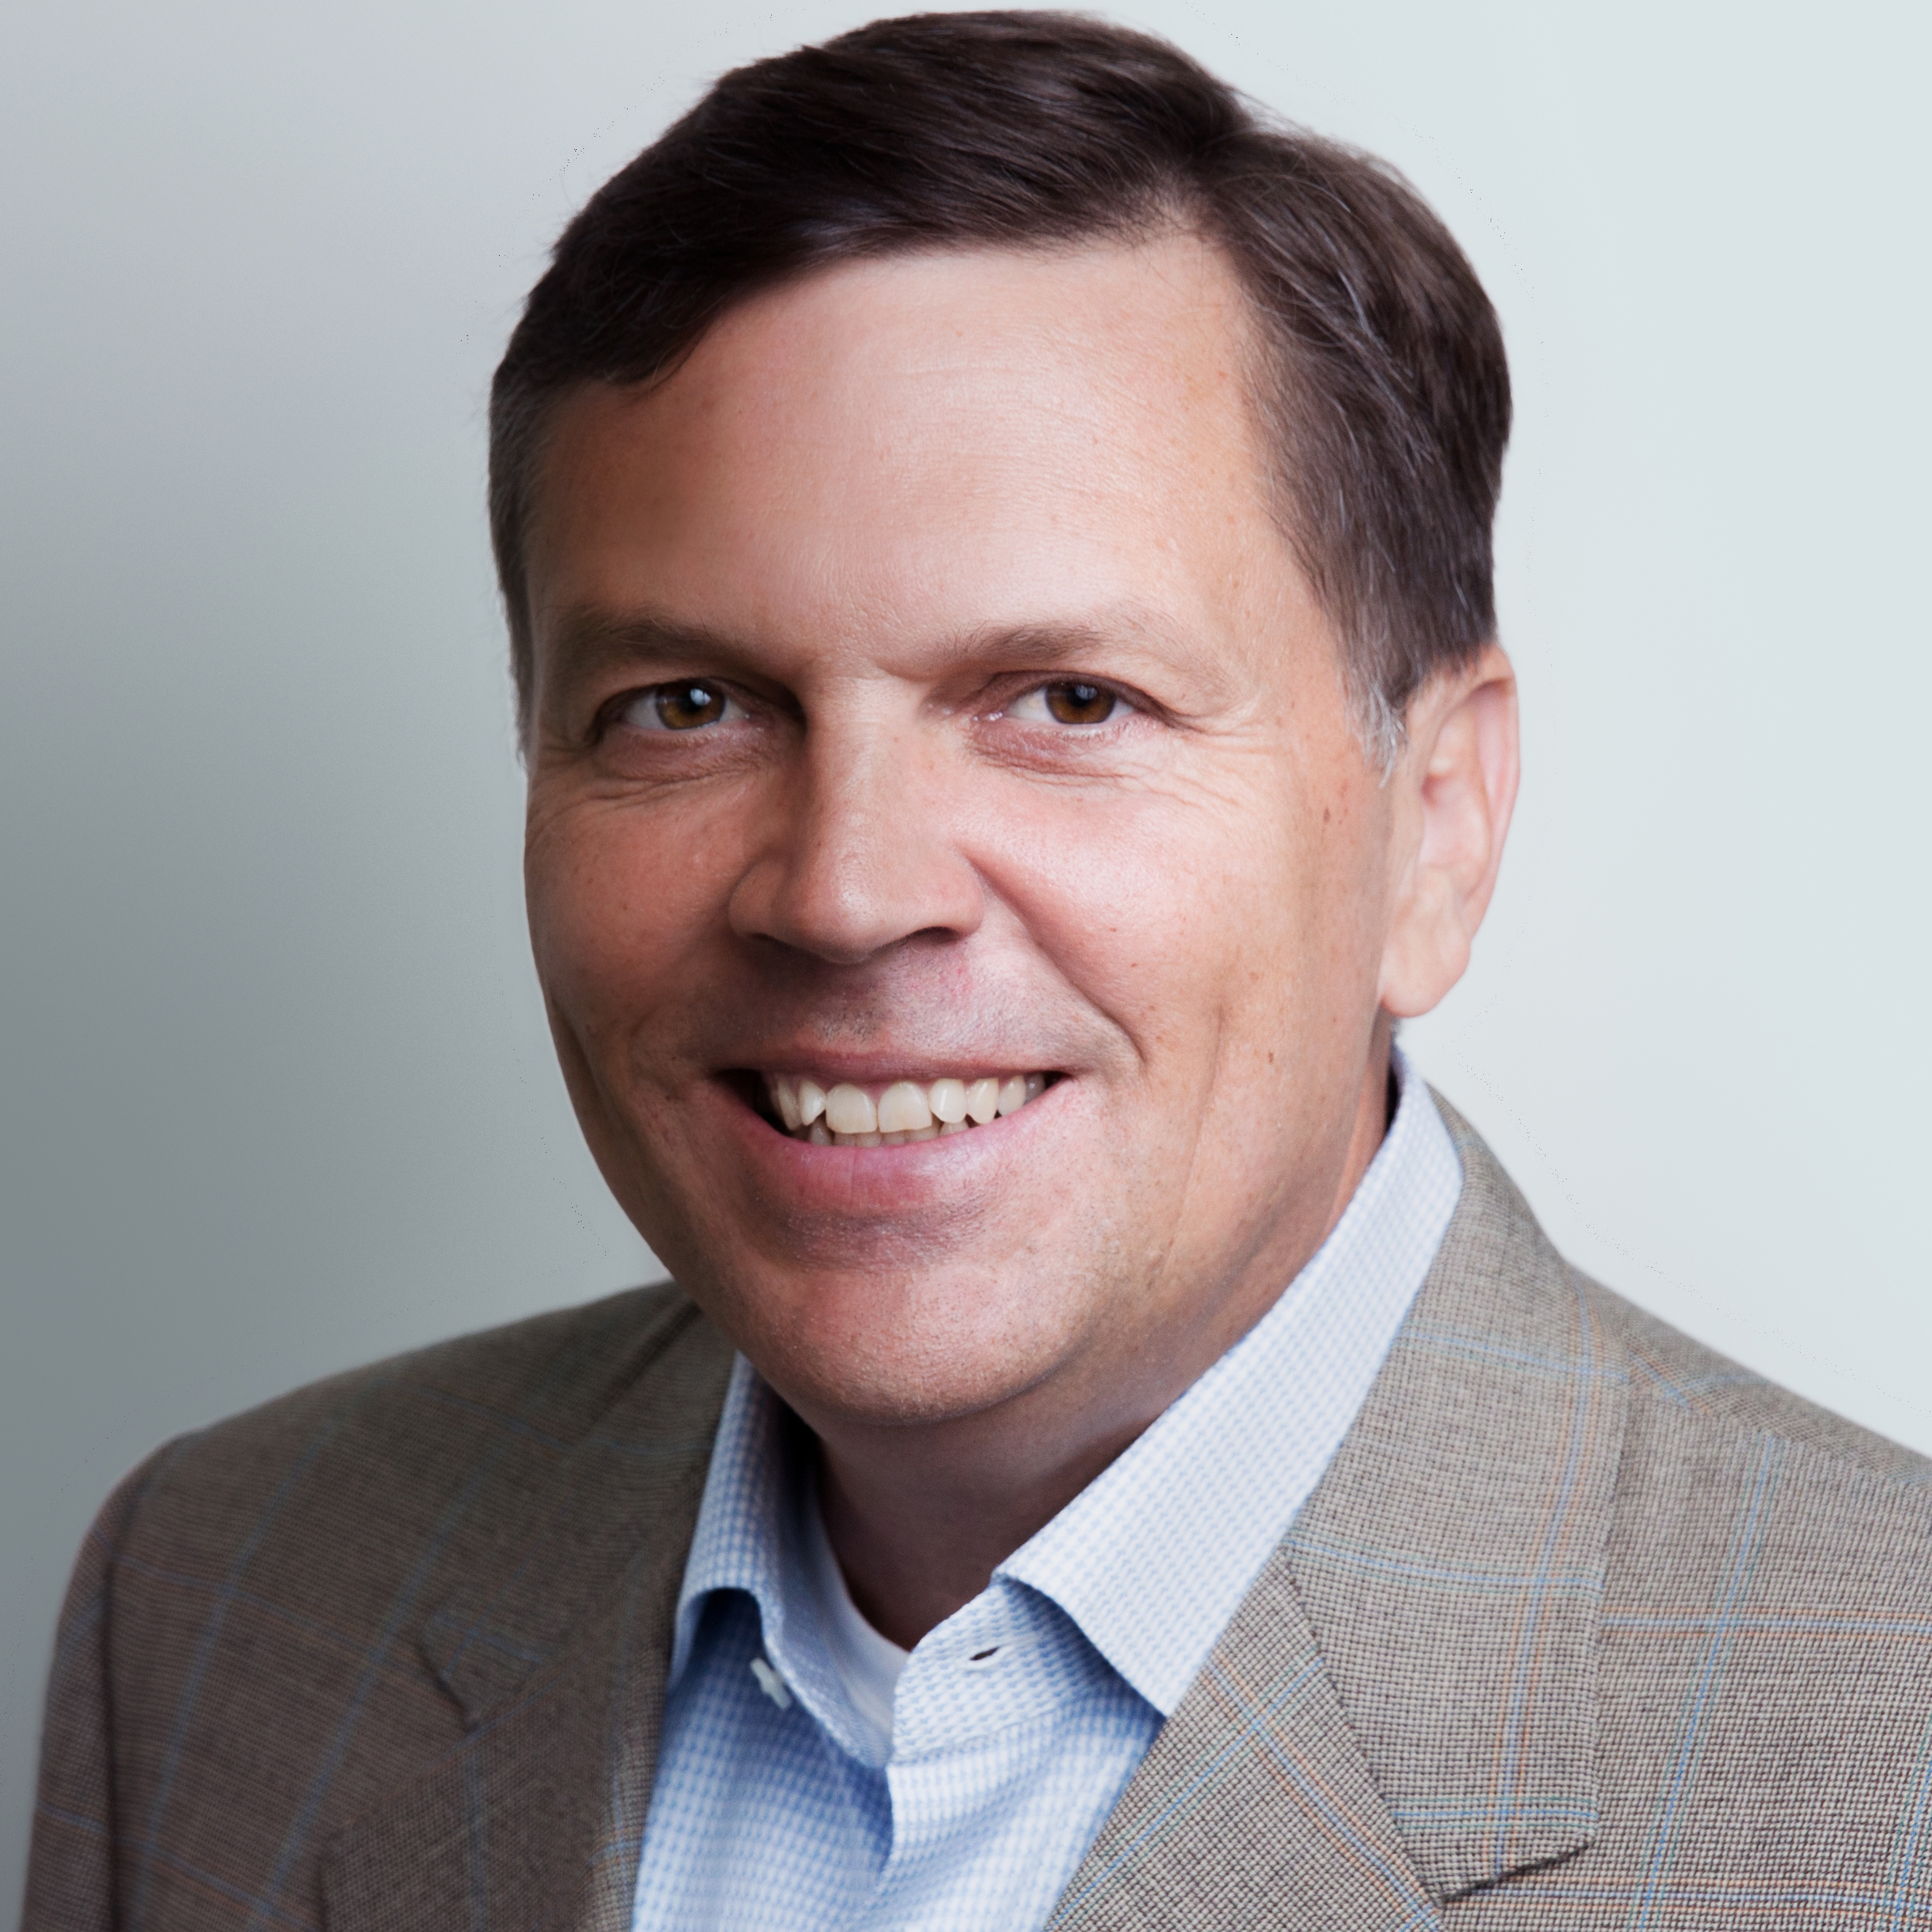 Todd Ford, Chief Financial Officer, Coupa